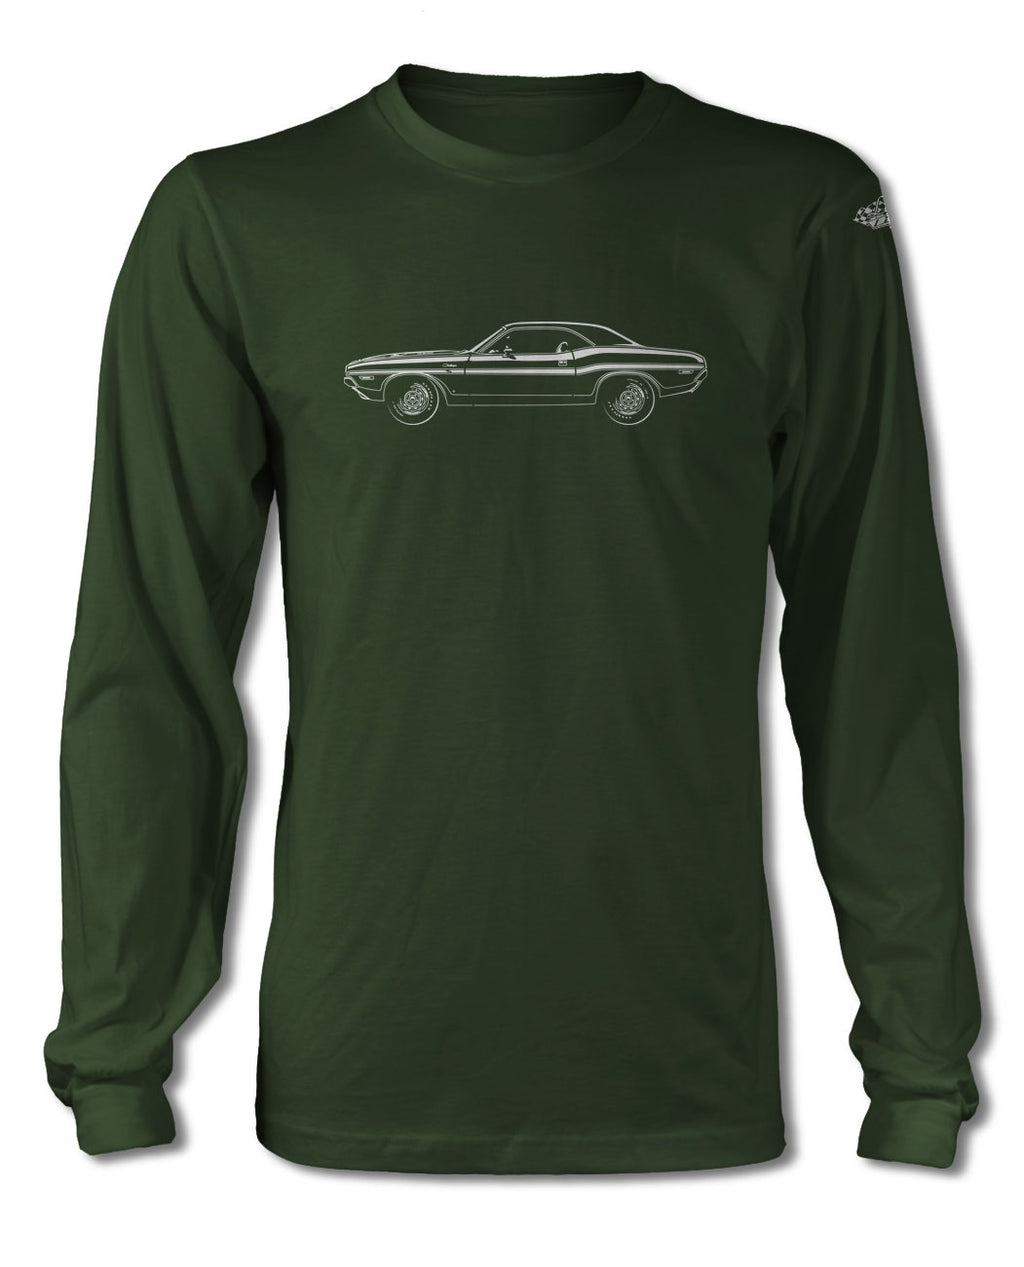 1970 Dodge Challenger RT with Stripes Coupe Bulge Hood T-Shirt - Long Sleeves - Side View